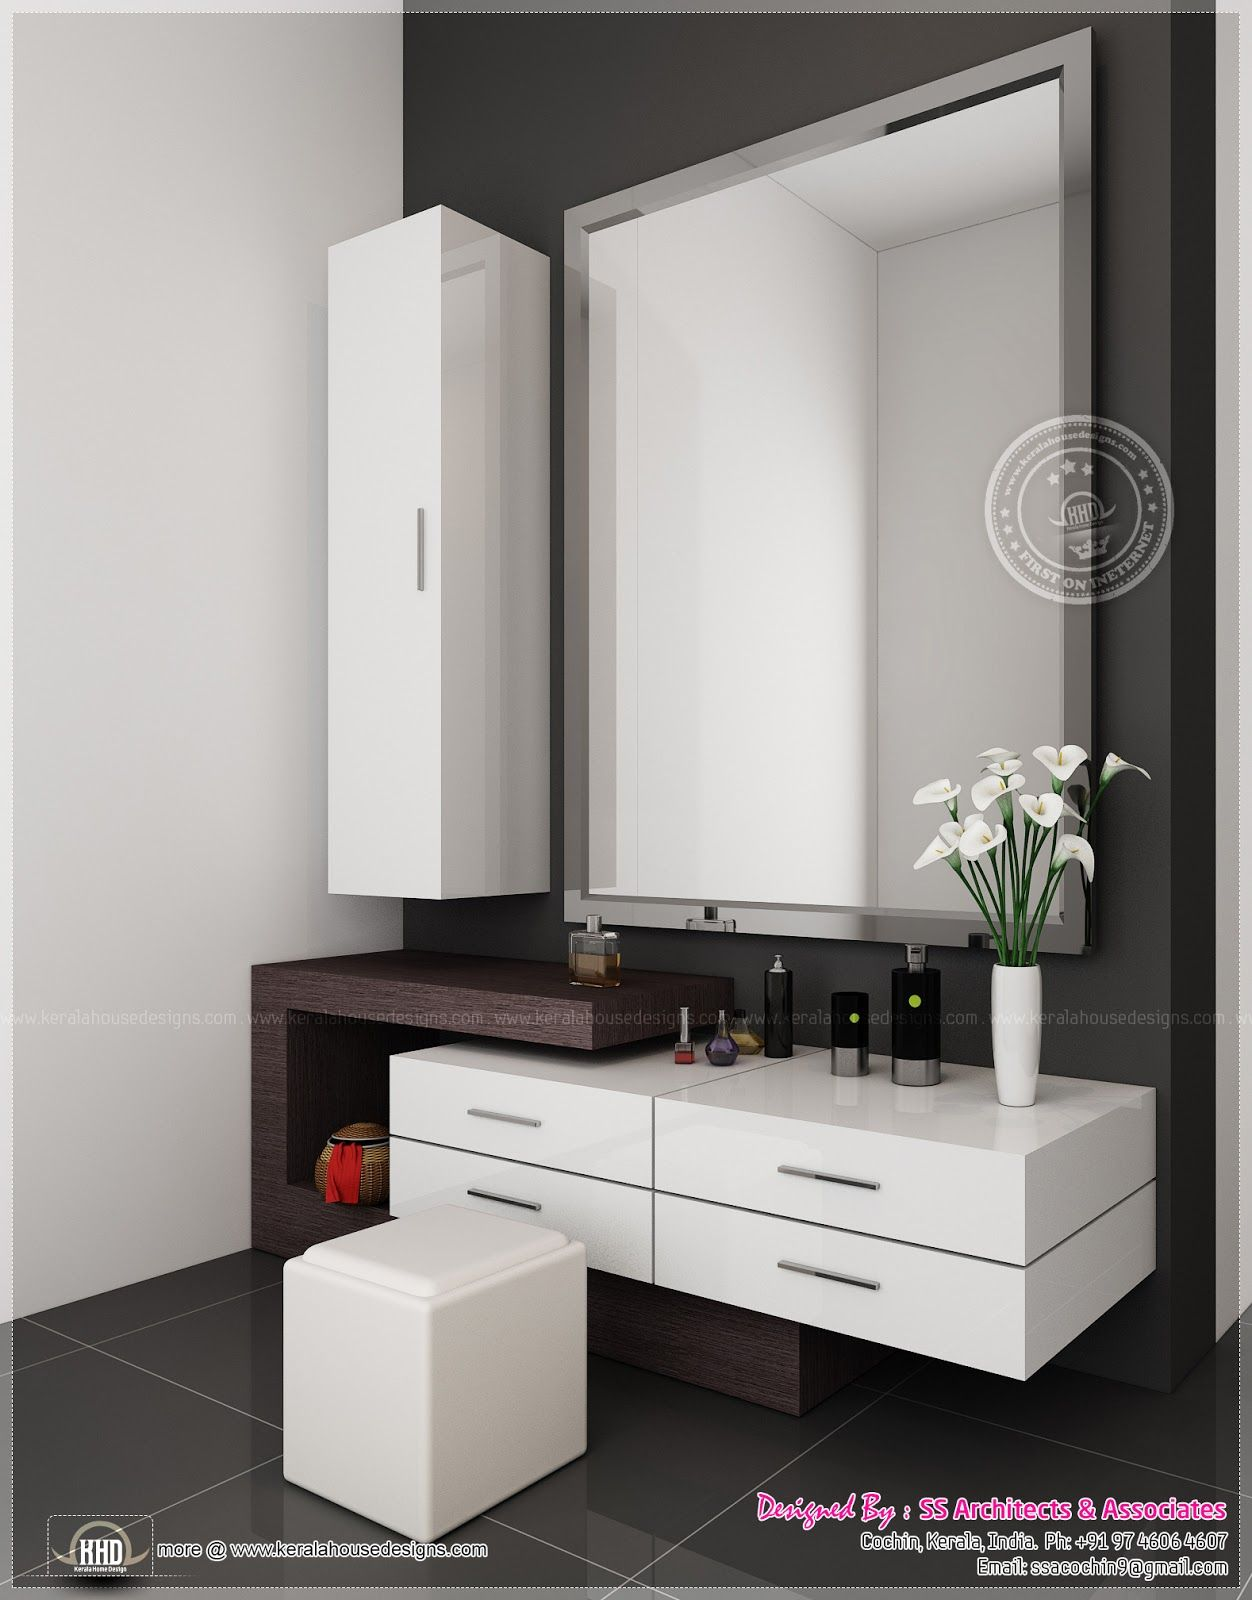 Modern dressing table with mirror - Cool Dressing Table Design Designs Small For Bedroom With Almirah Simple Full Length Mirror In Wood